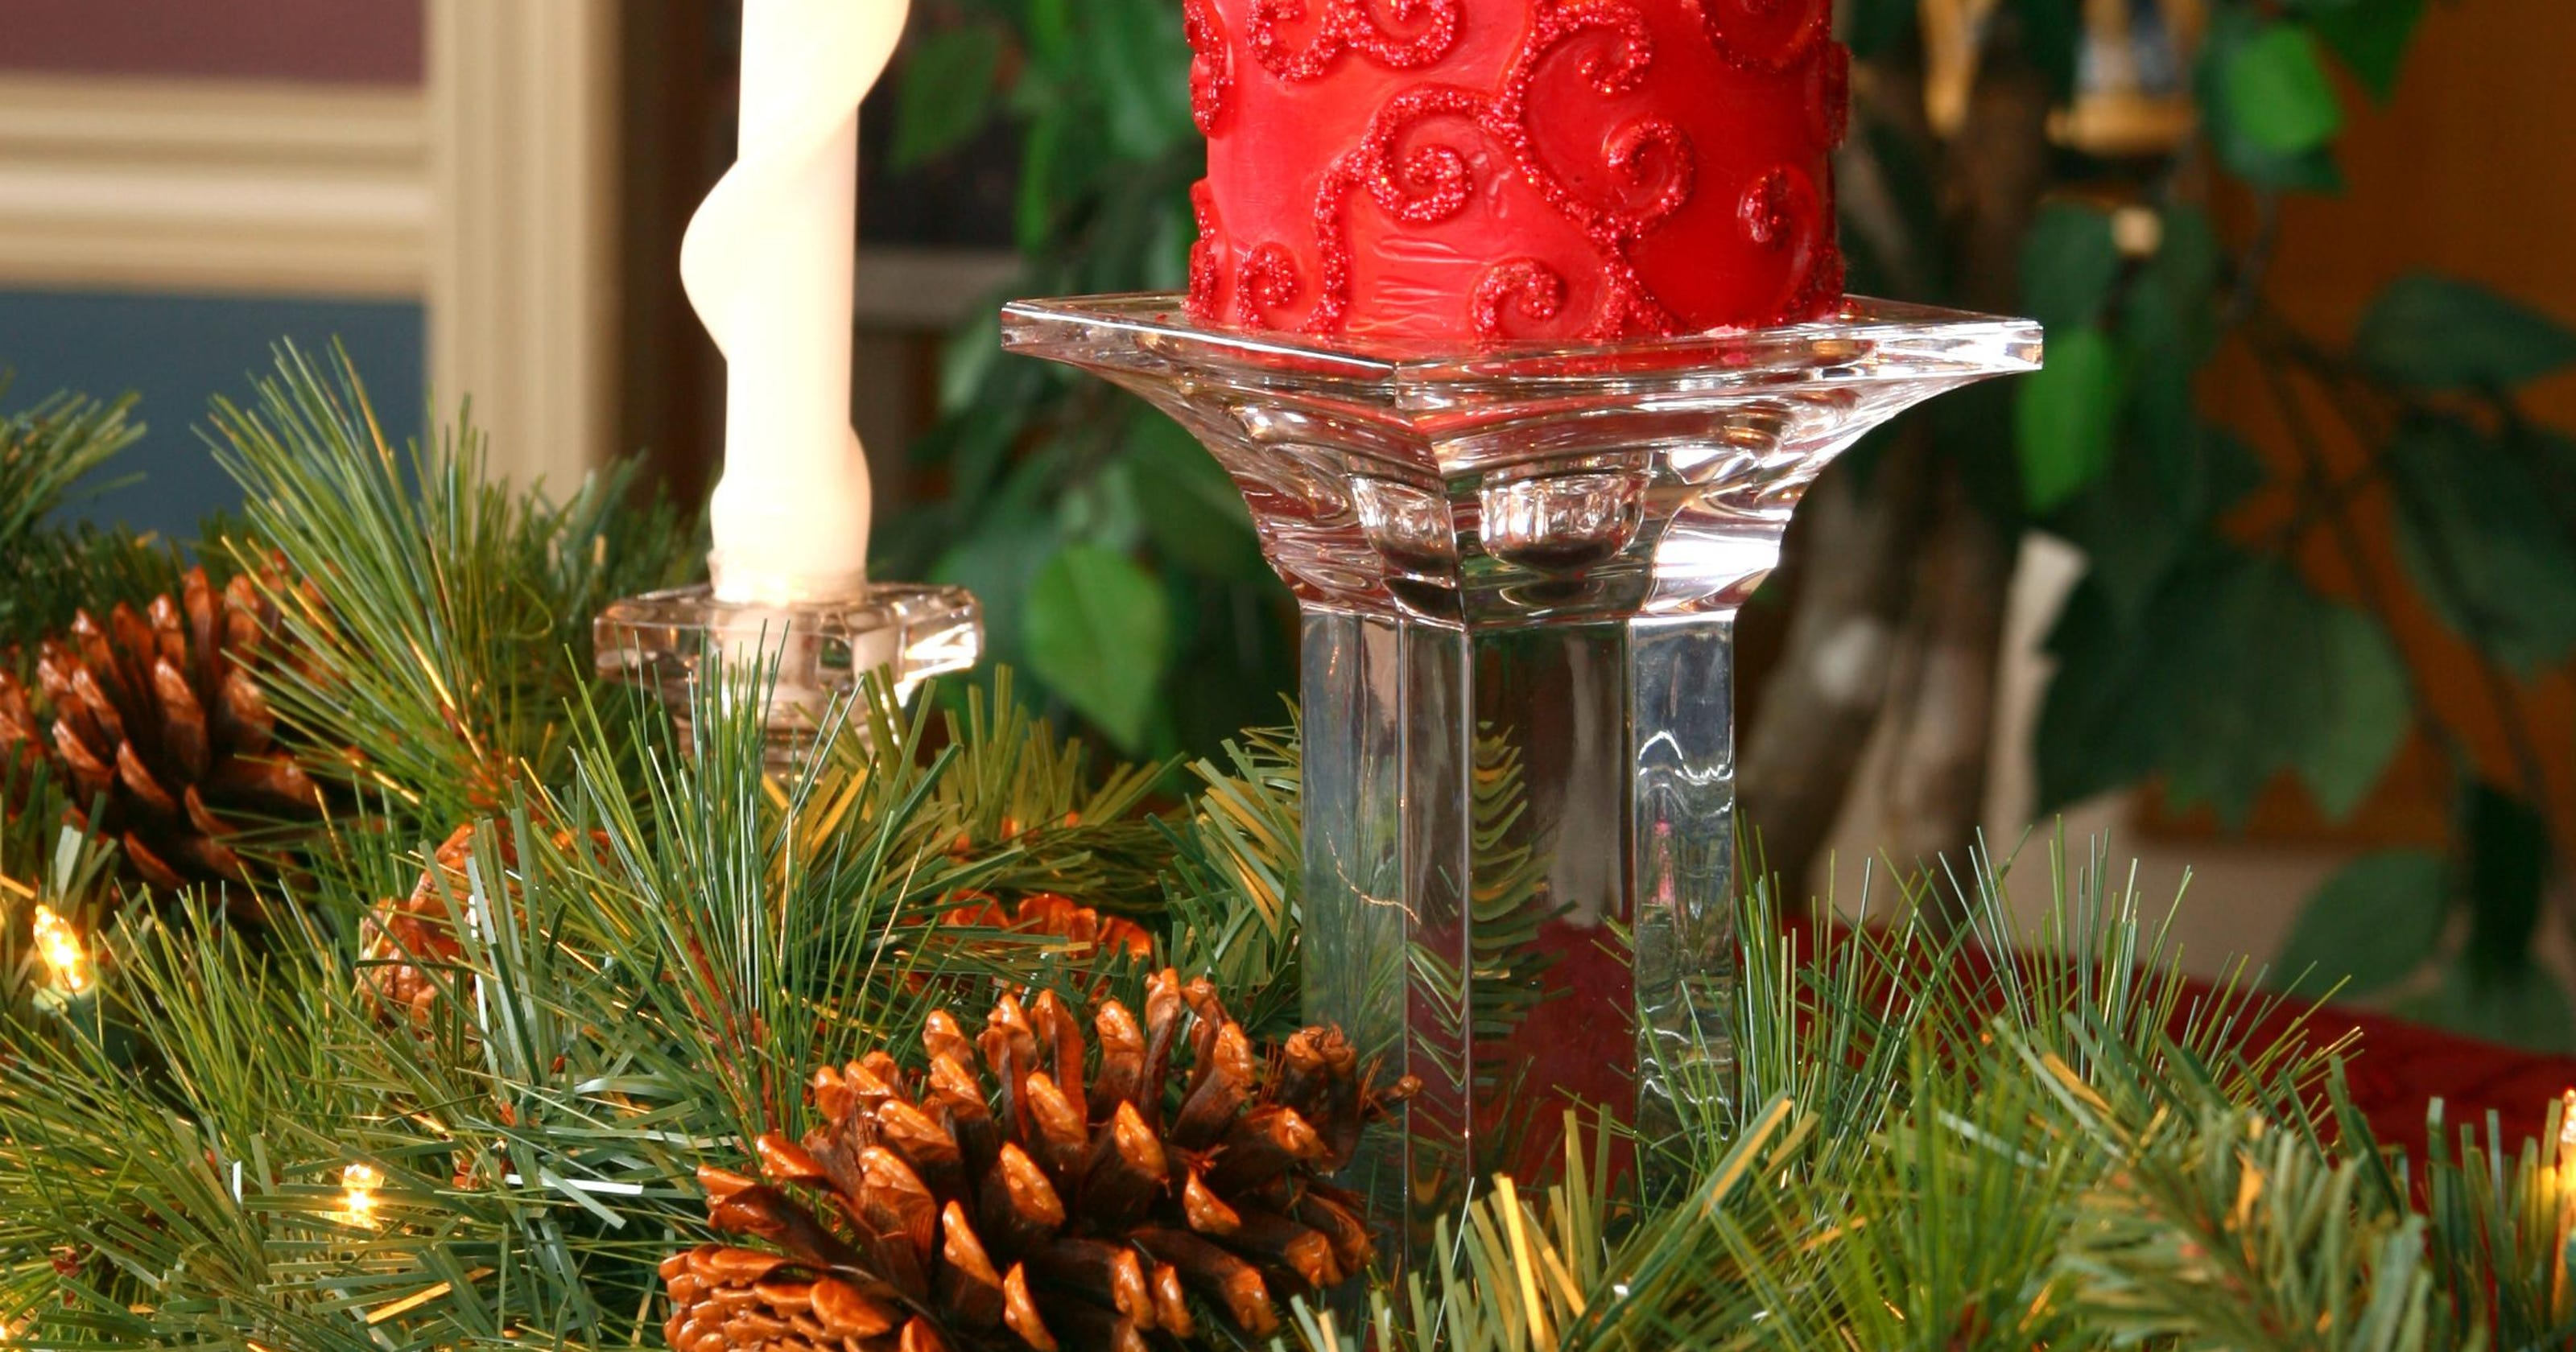 The final touch: A Christmas centerpiece to celebrate